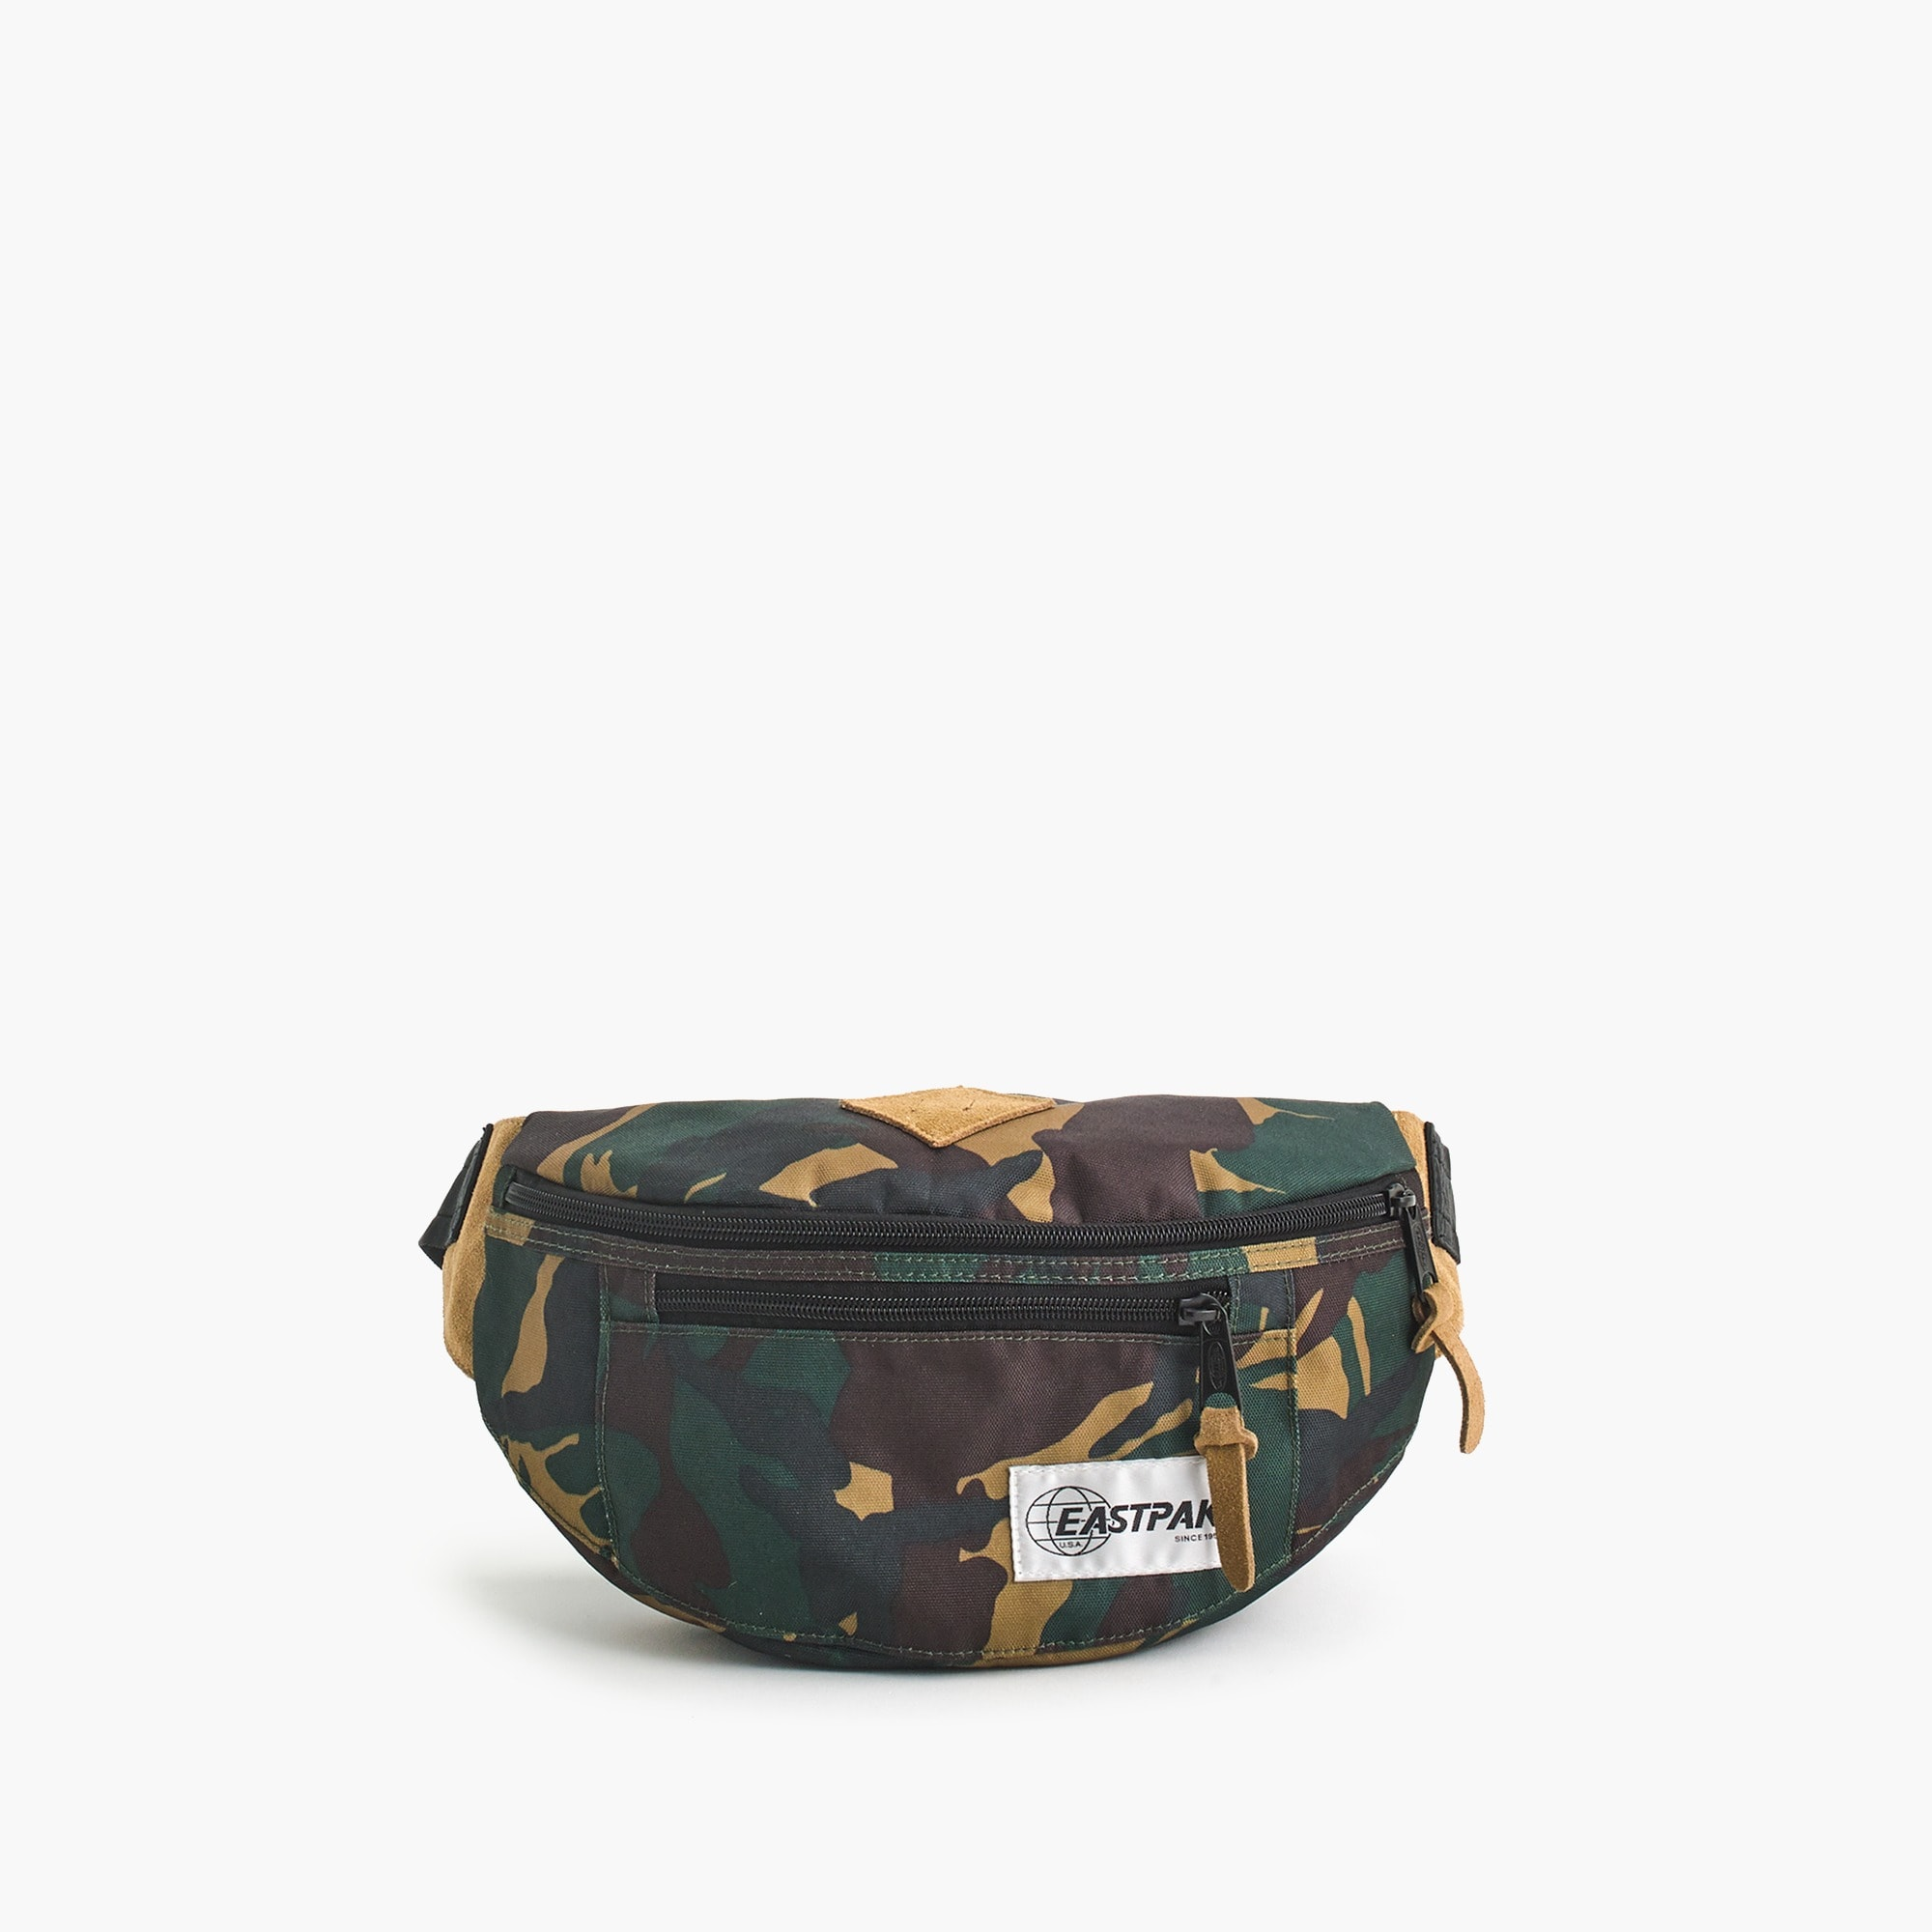 mens Eastpak® for J.Crew waist pack